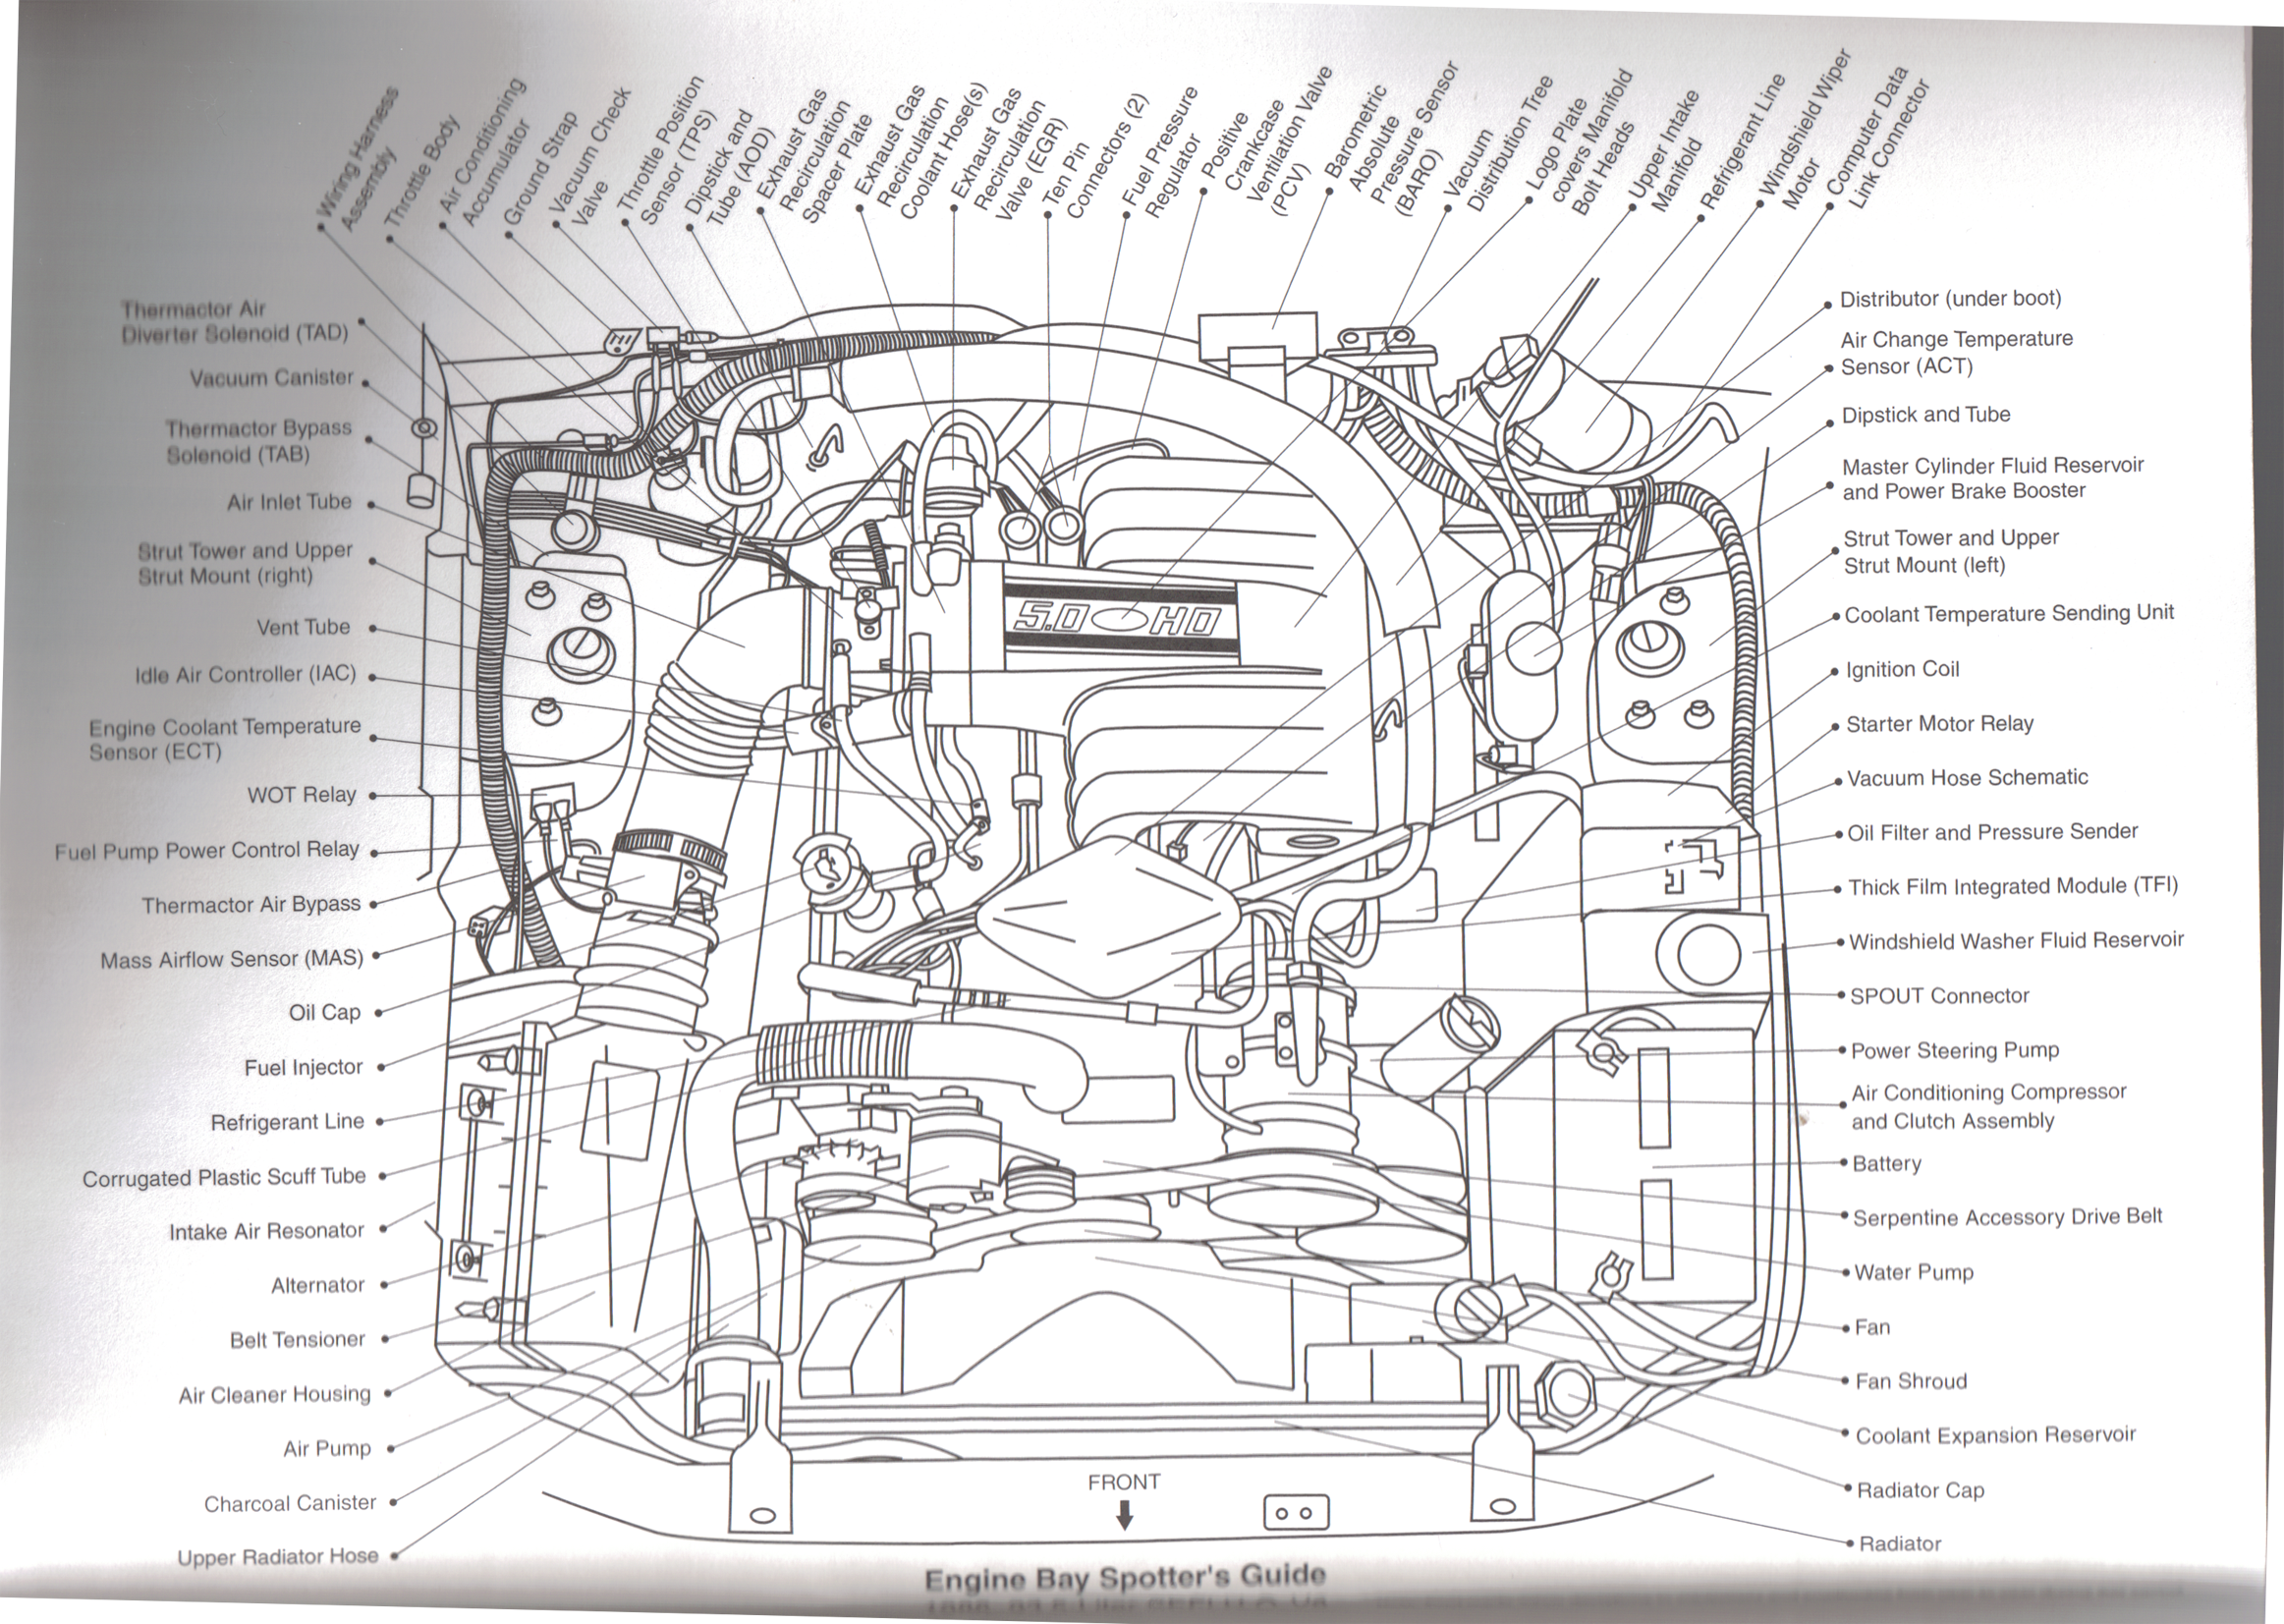 2006 Mustang 4 0 Engine Diagram - Wiring Diagram Gp on ford 4.0 v6 engine, ford aerostar 3.0 engine, 2000 windstar 3.8 engine diagram, jeep cherokee 4.0 engine diagram, jeep 4.0 vacuum diagram, 2003 ford explorer intake manifold diagram, ford cruise control diagram, toyota 4.0 engine diagram, 2006 toyota rav4 engine diagram, chrysler 4.0l engine diagram, 2006 mustang engine diagram, ford 4.0 sohc problems, 04 explorer timing chain diagram, jeep 4.0l engine diagram, ford 4.0 sohc exploded-view, ford automatic transmission diagram, 1997 mazda b2300 engine diagram, ford ranger 4.0l engine, 2002 mercury sable engine diagram, ford vulcan engine,